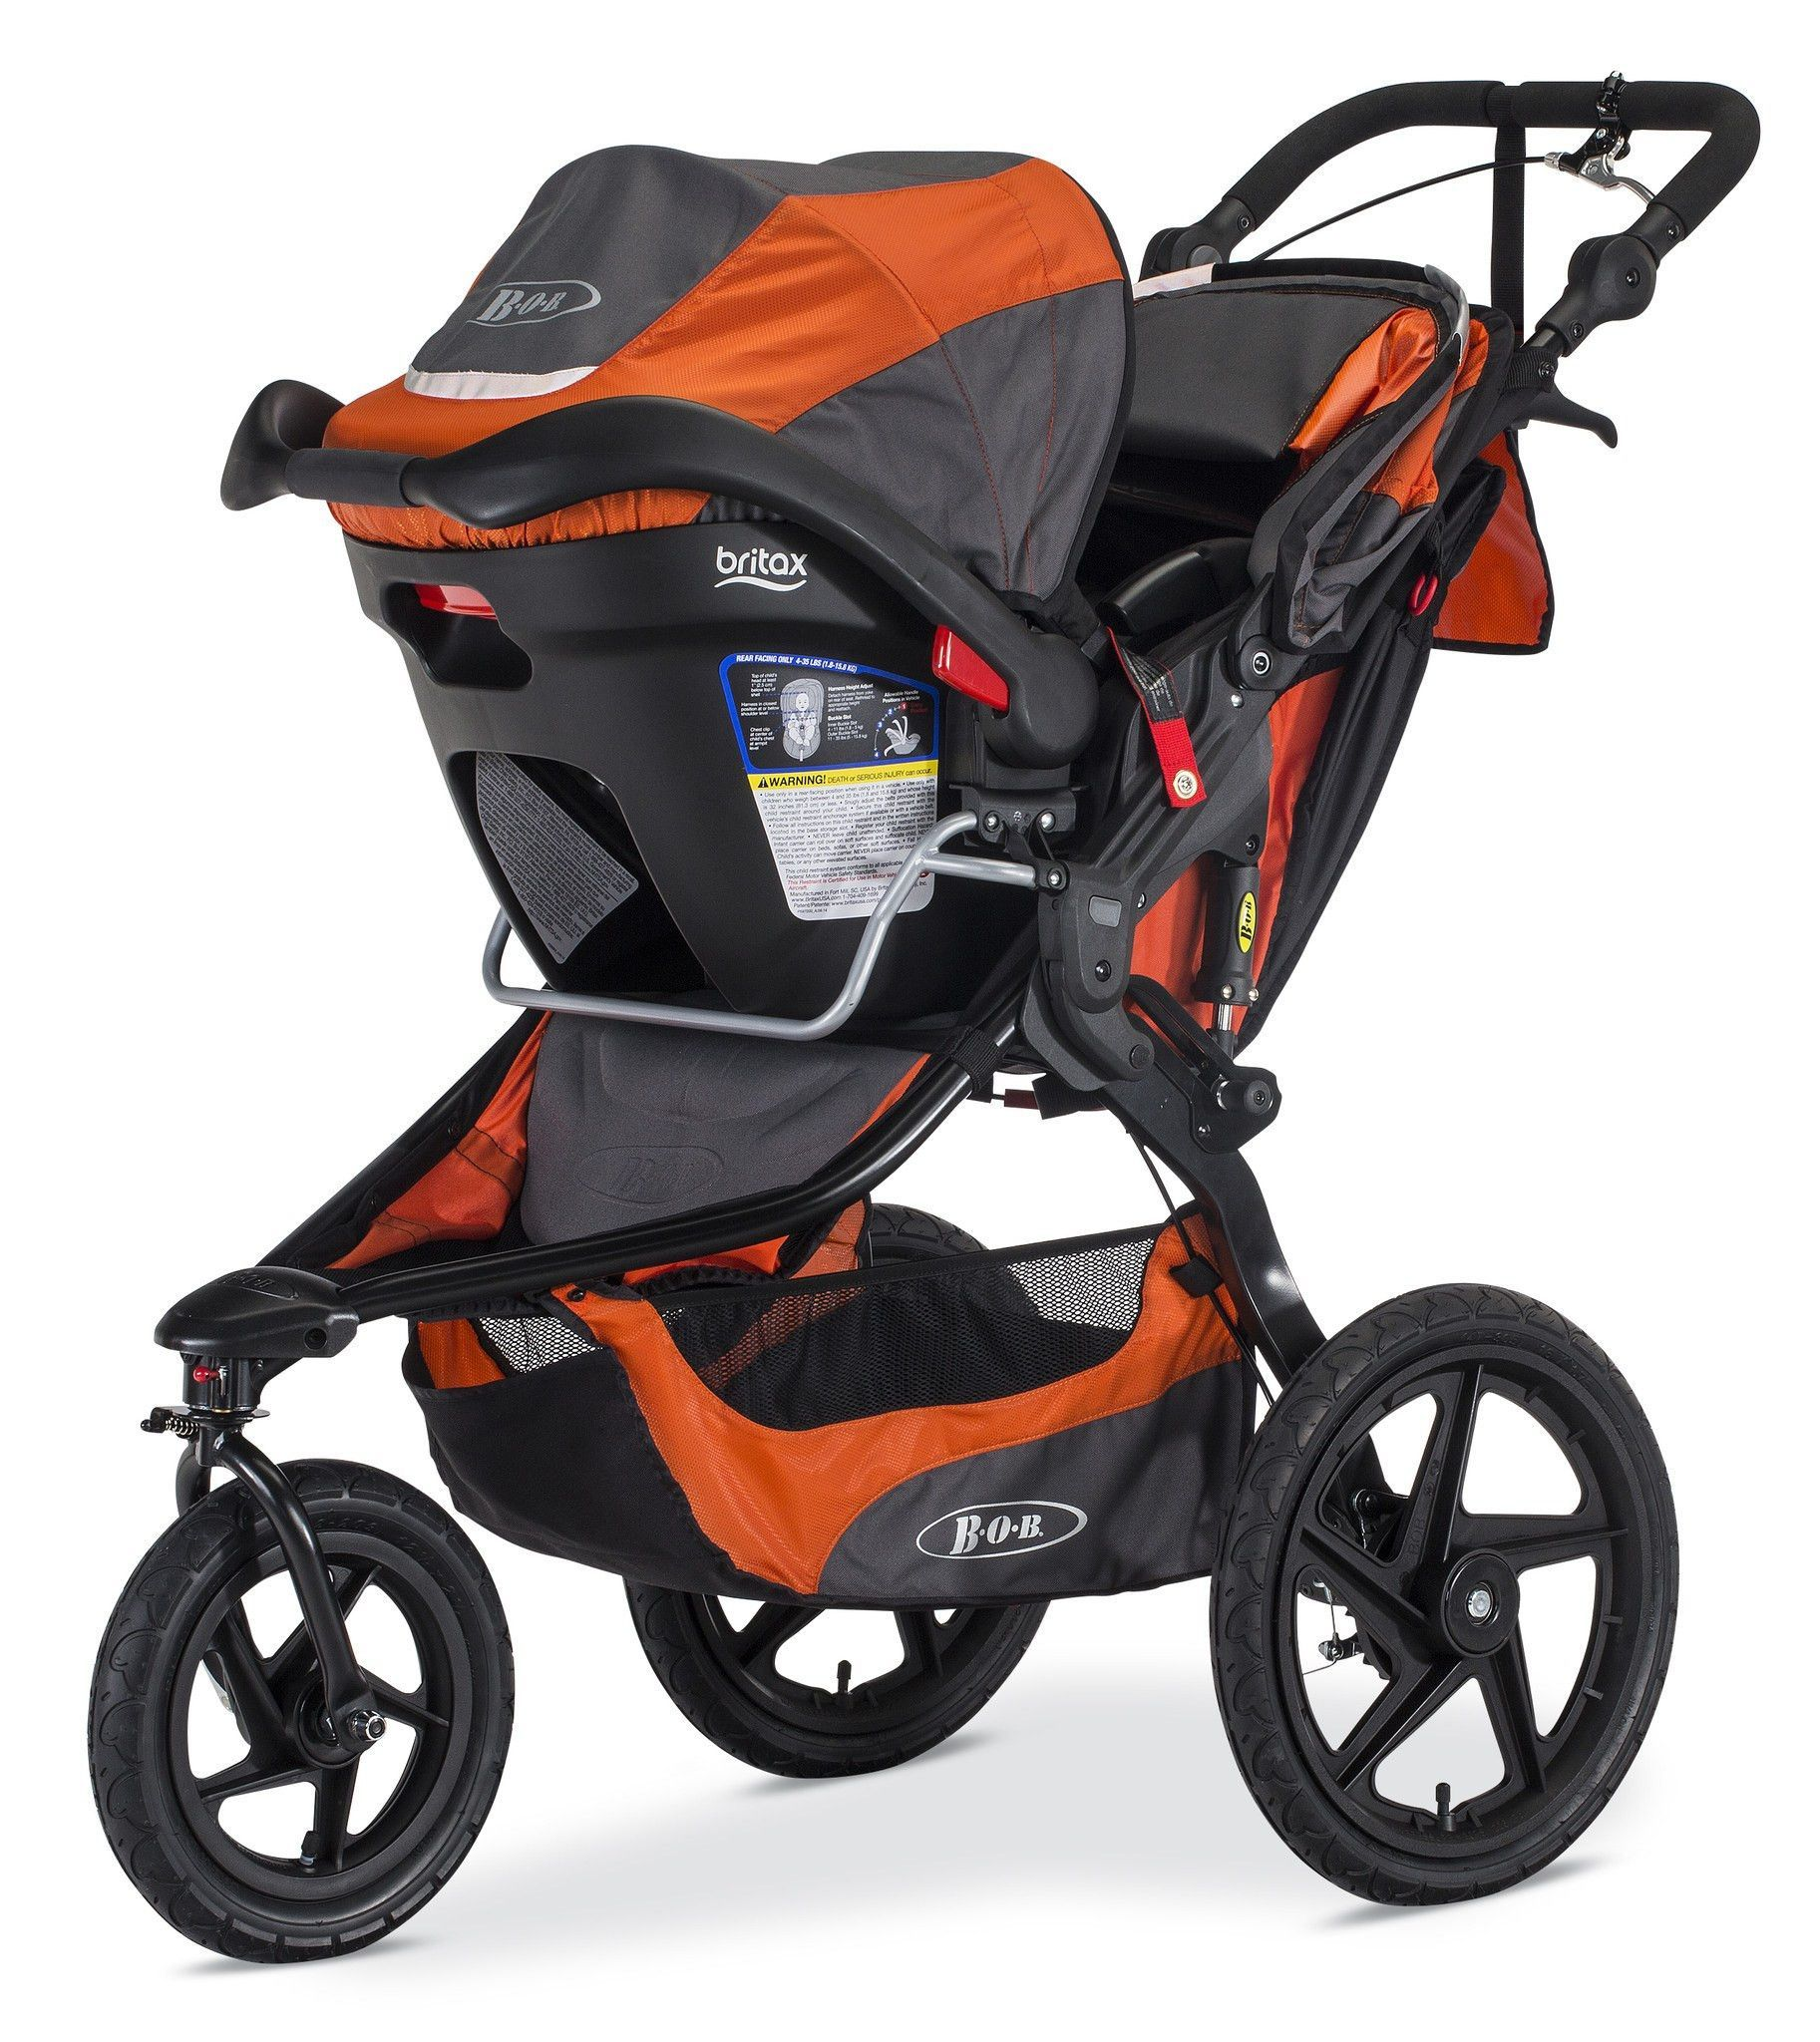 Meet the perfect jogging stroller! The Revolution Pro is